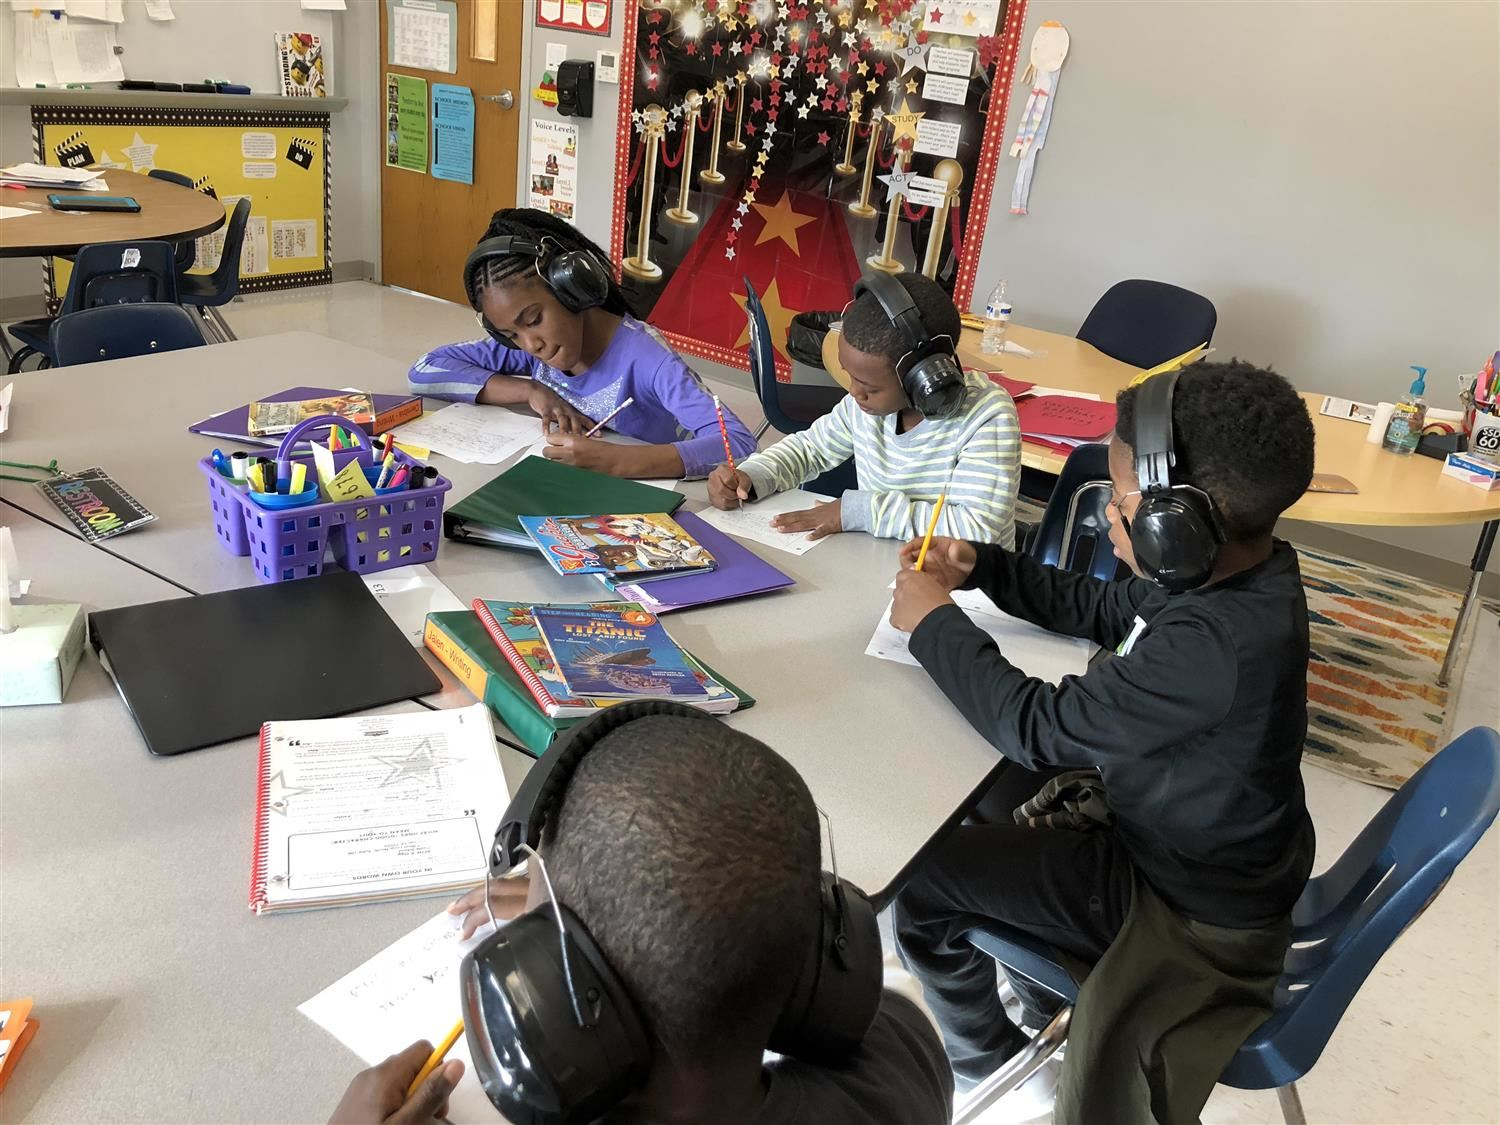 students study with earmuffs